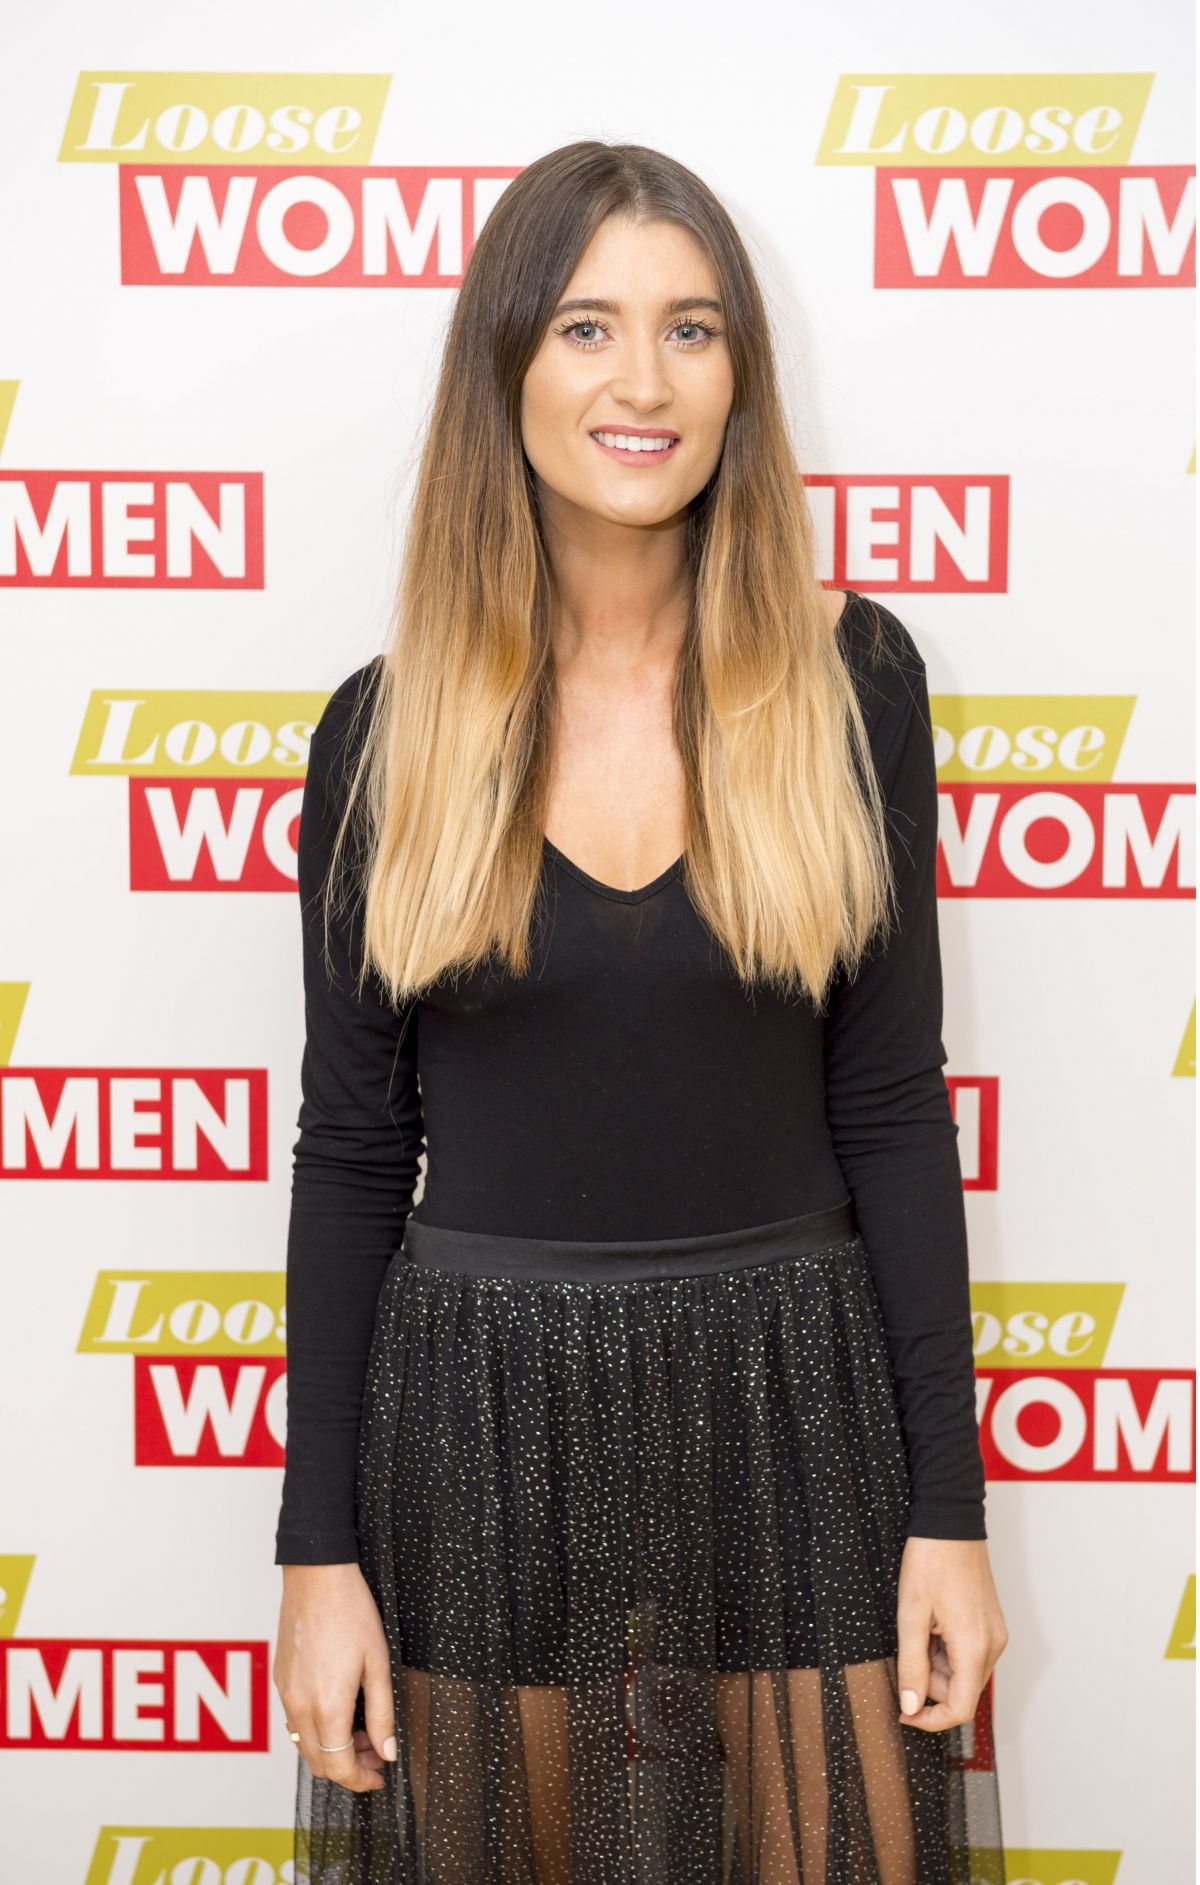 charley webb - photo #31